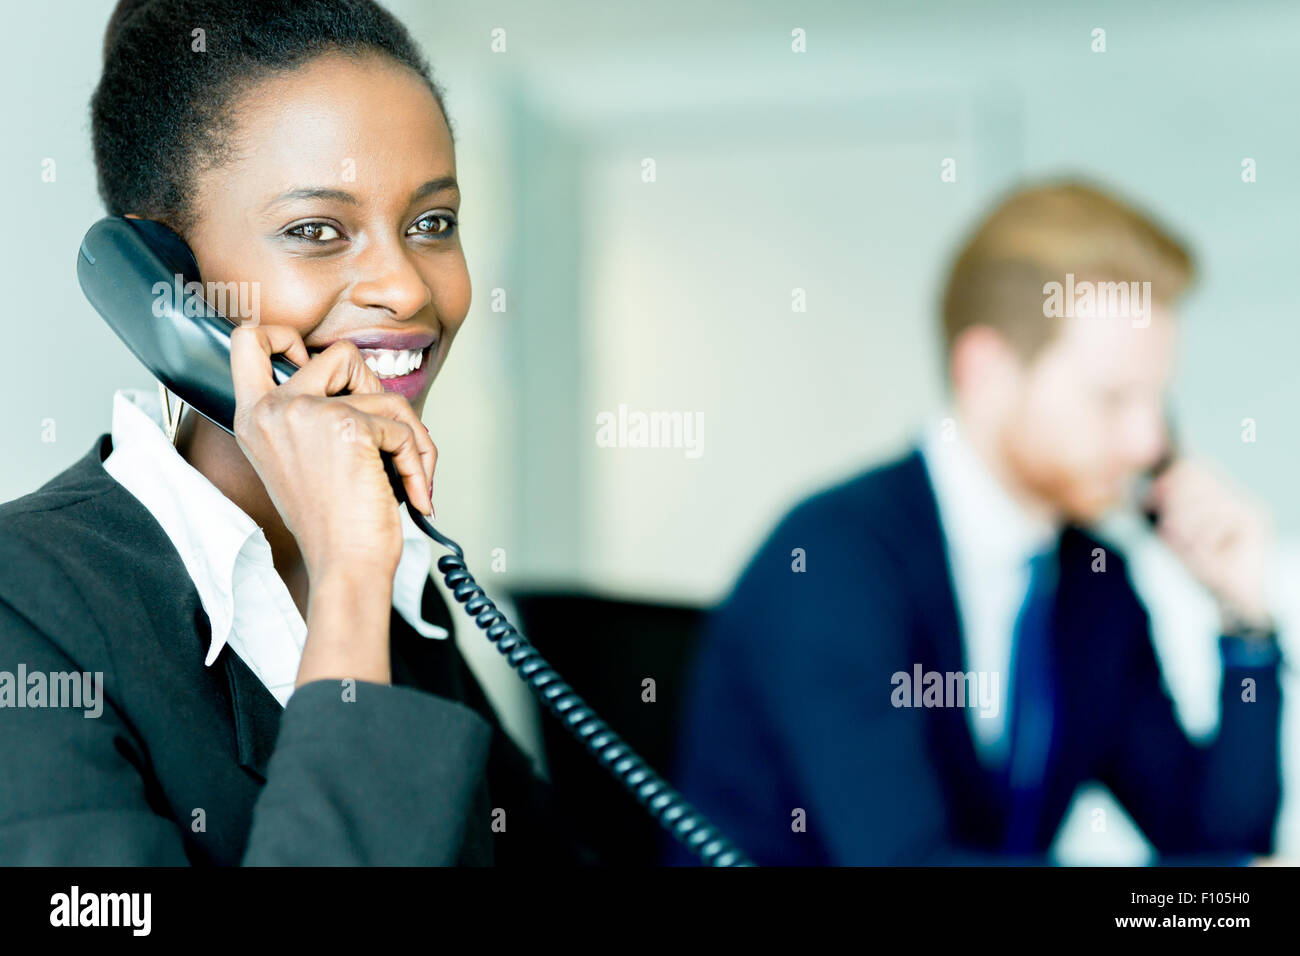 A beautiful, black, young woman working at a call center in an office with her red haird partner on the other end Stock Photo